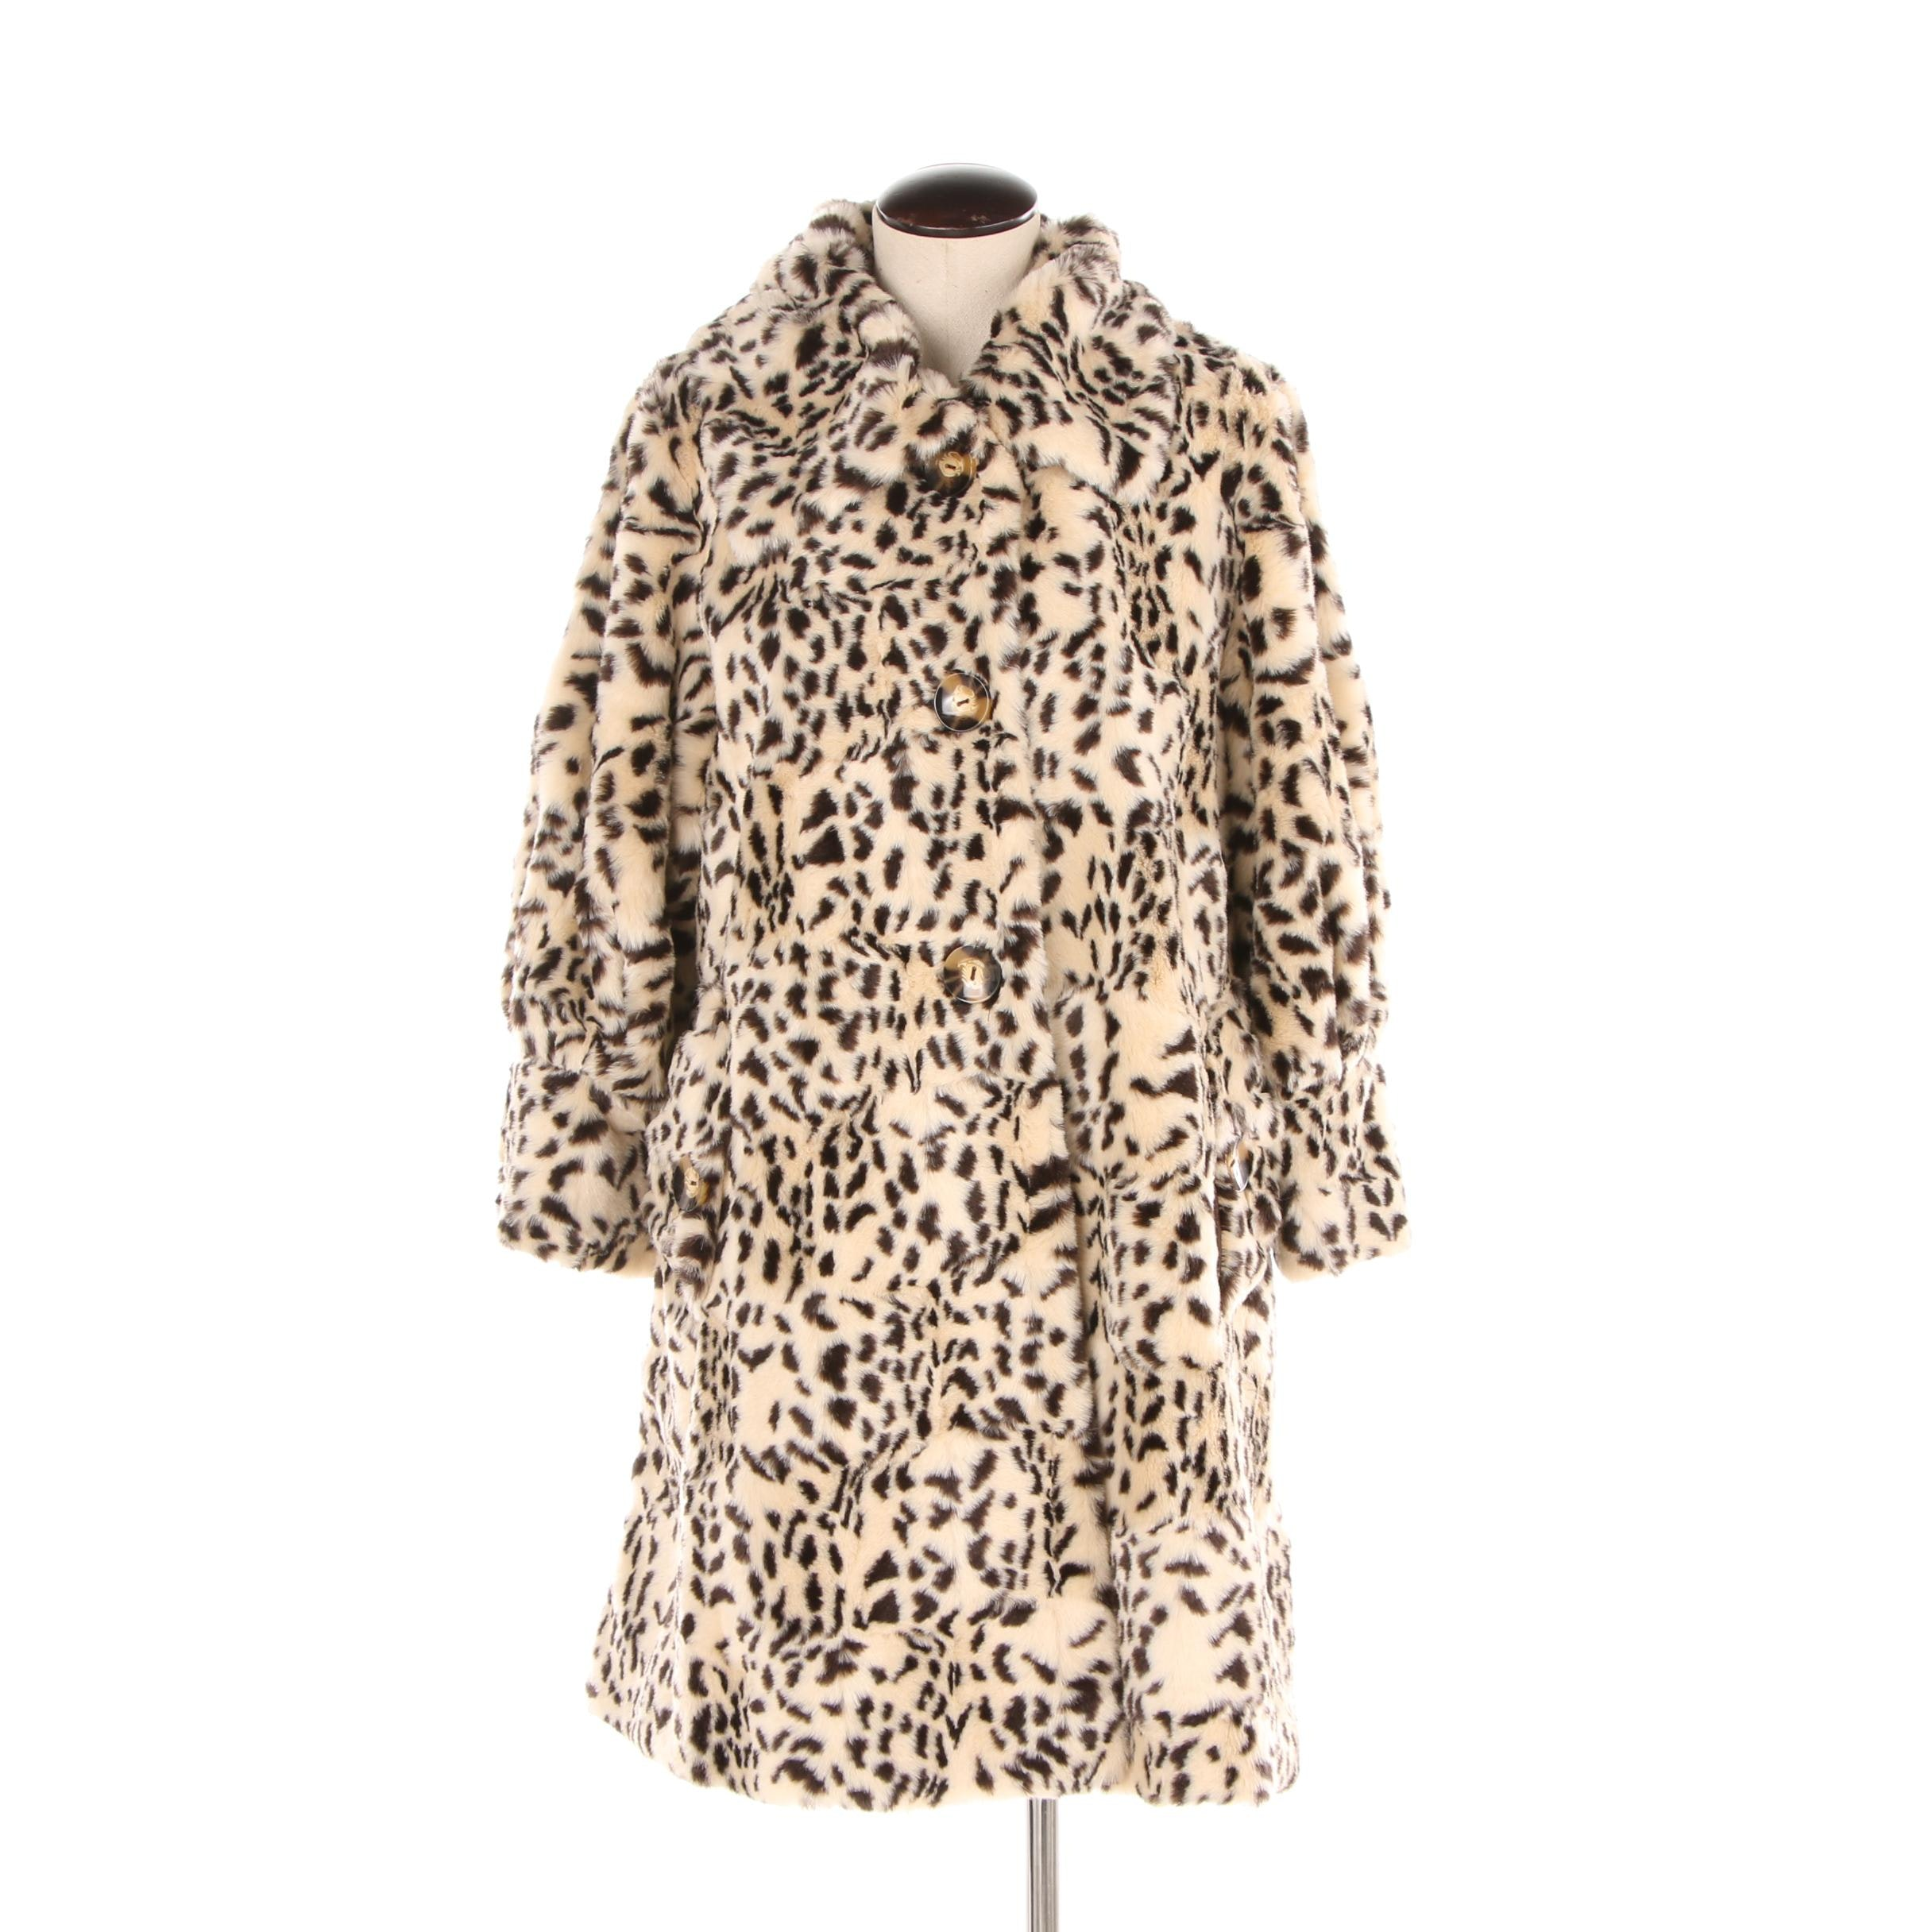 Women's Boston Proper Cheetah Print Faux Fur Coat